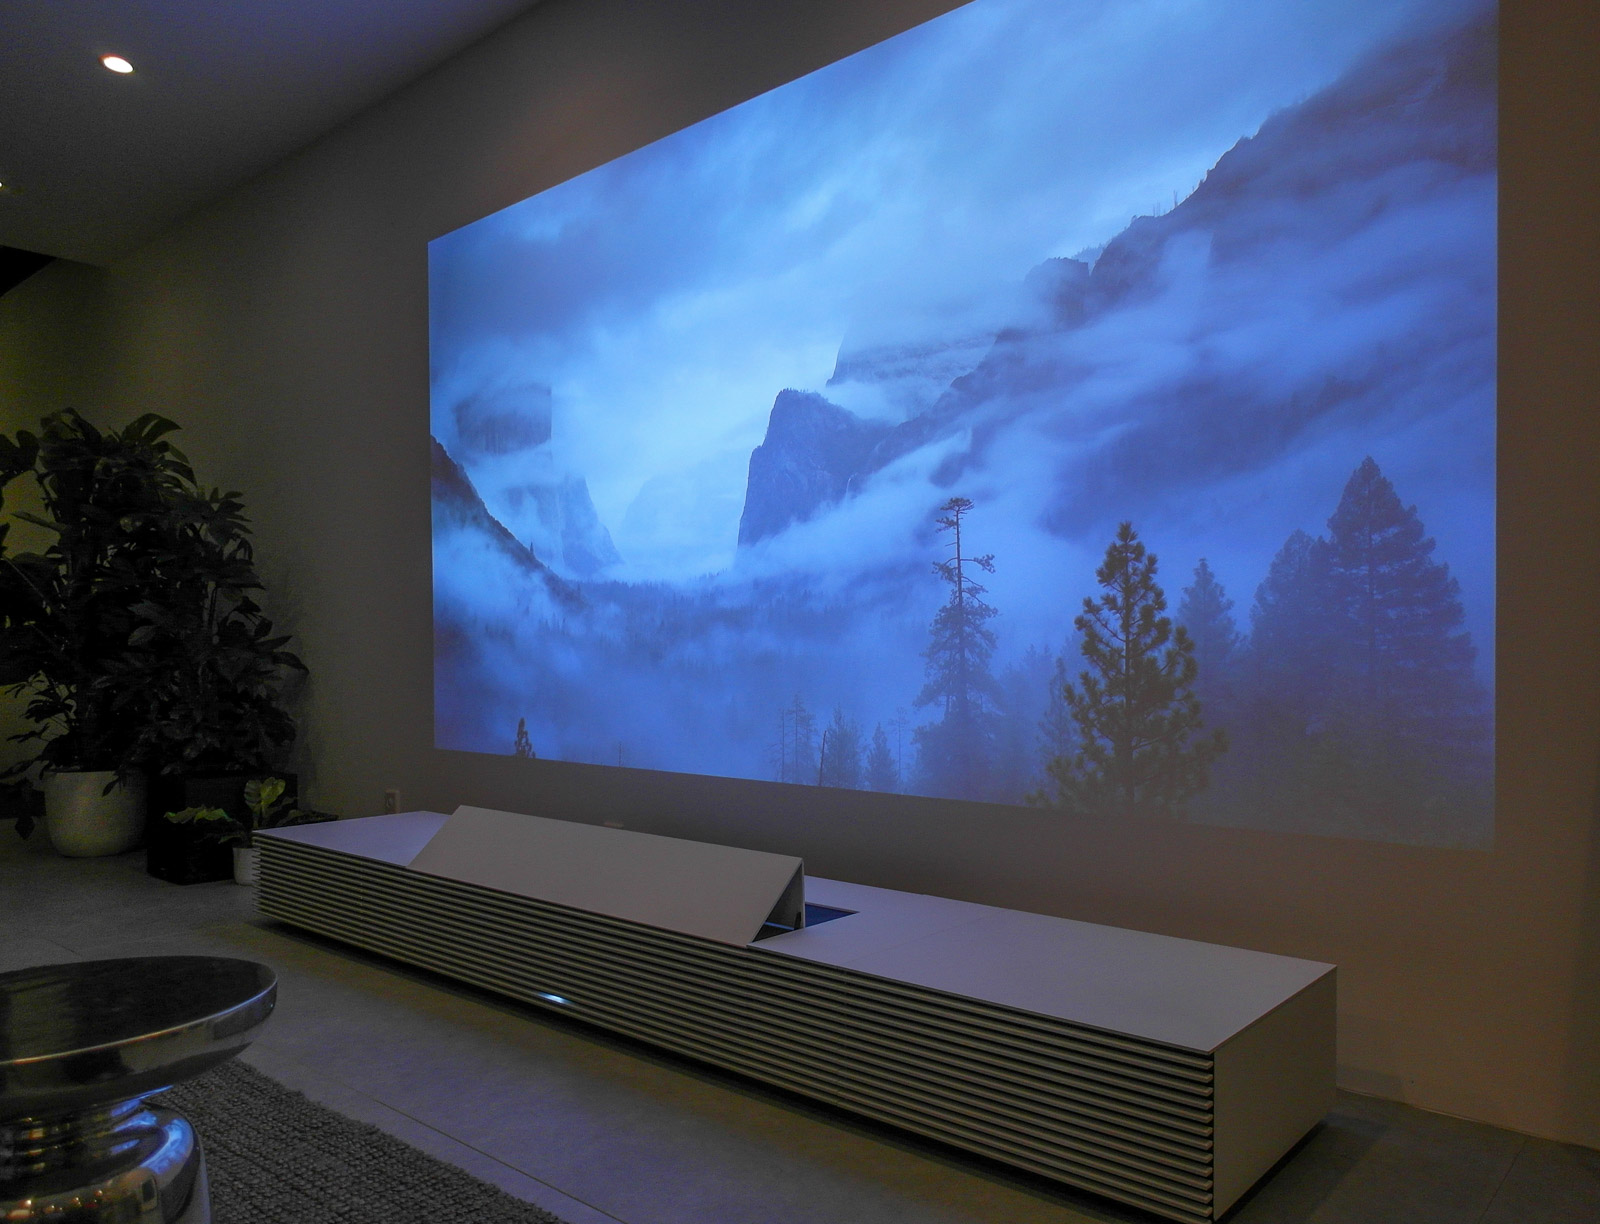 <h1>Sony 4K Ultra Short Throw Projector</h1> <h2>IFA 2015 SmartHomeConsult Report</h2>